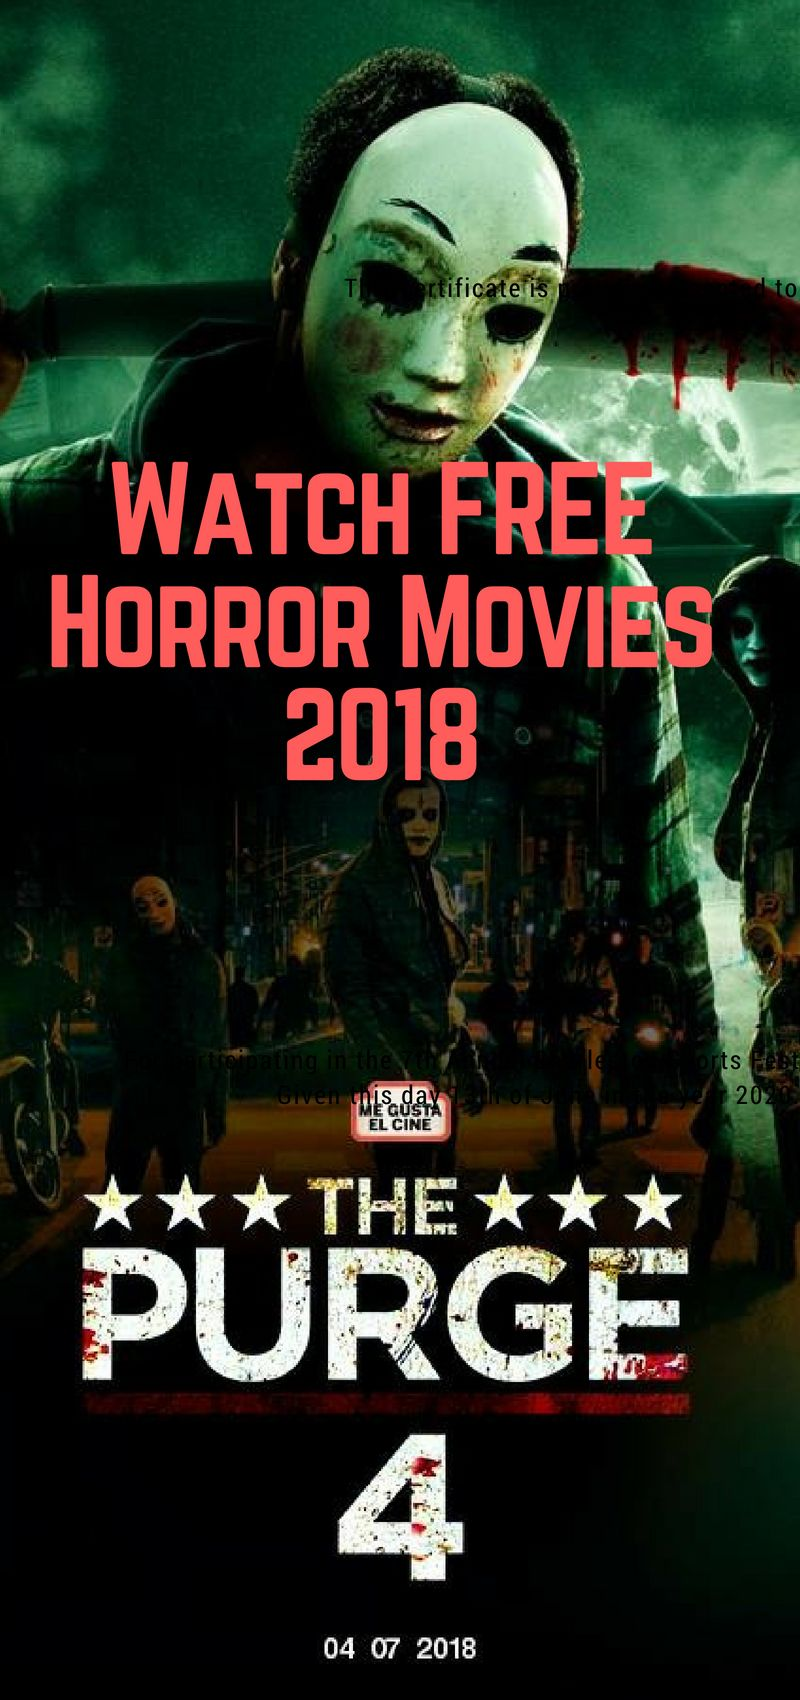 Watch FREE Horror Movies 2018 #horrormovies2017 | Classic TV/Movies